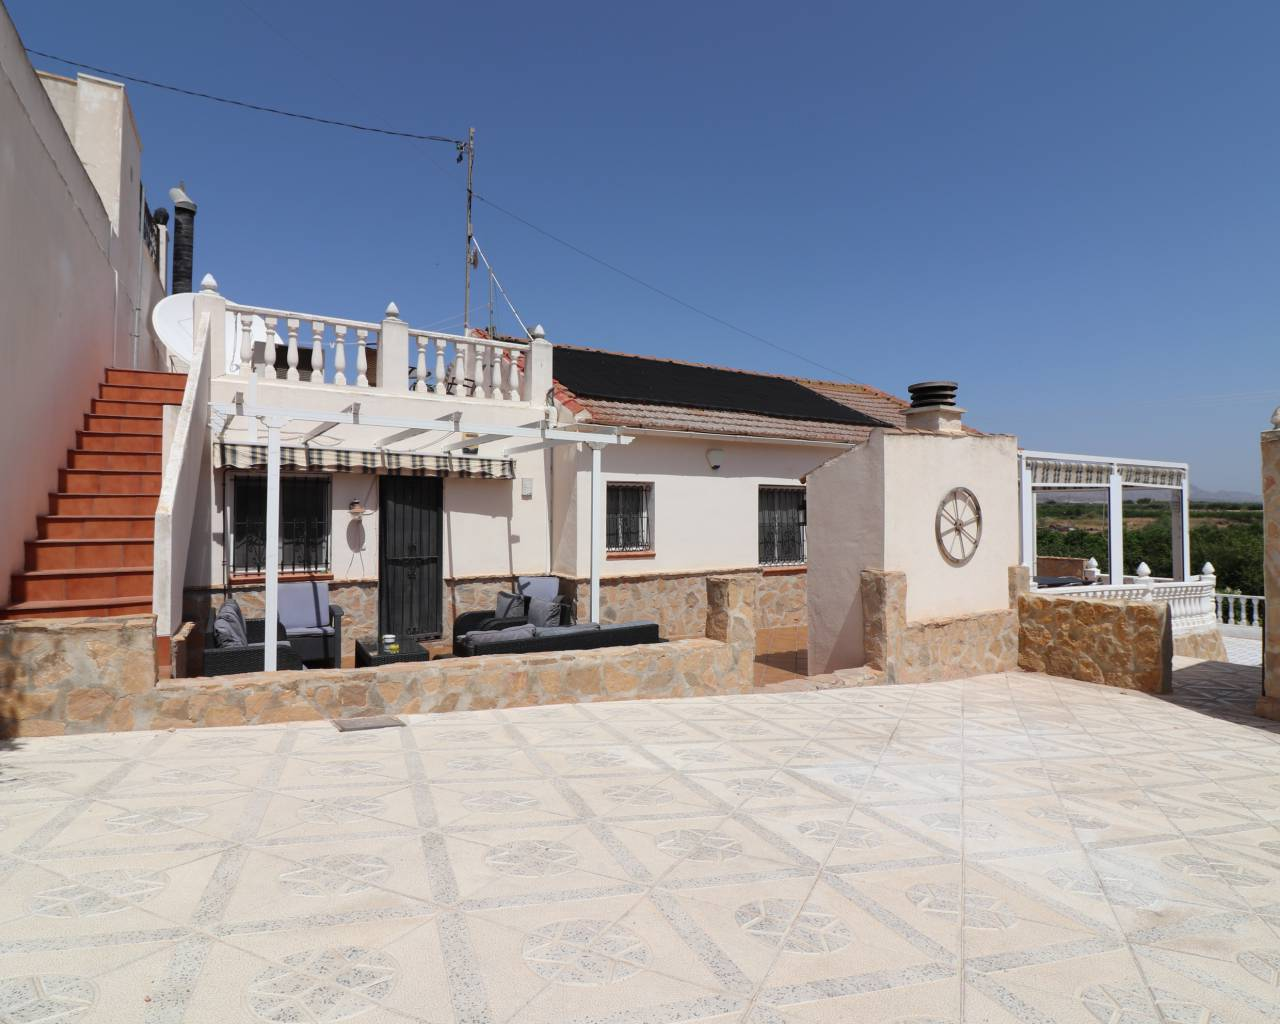 Country Property - Venta - La Murada - La Murada - Country